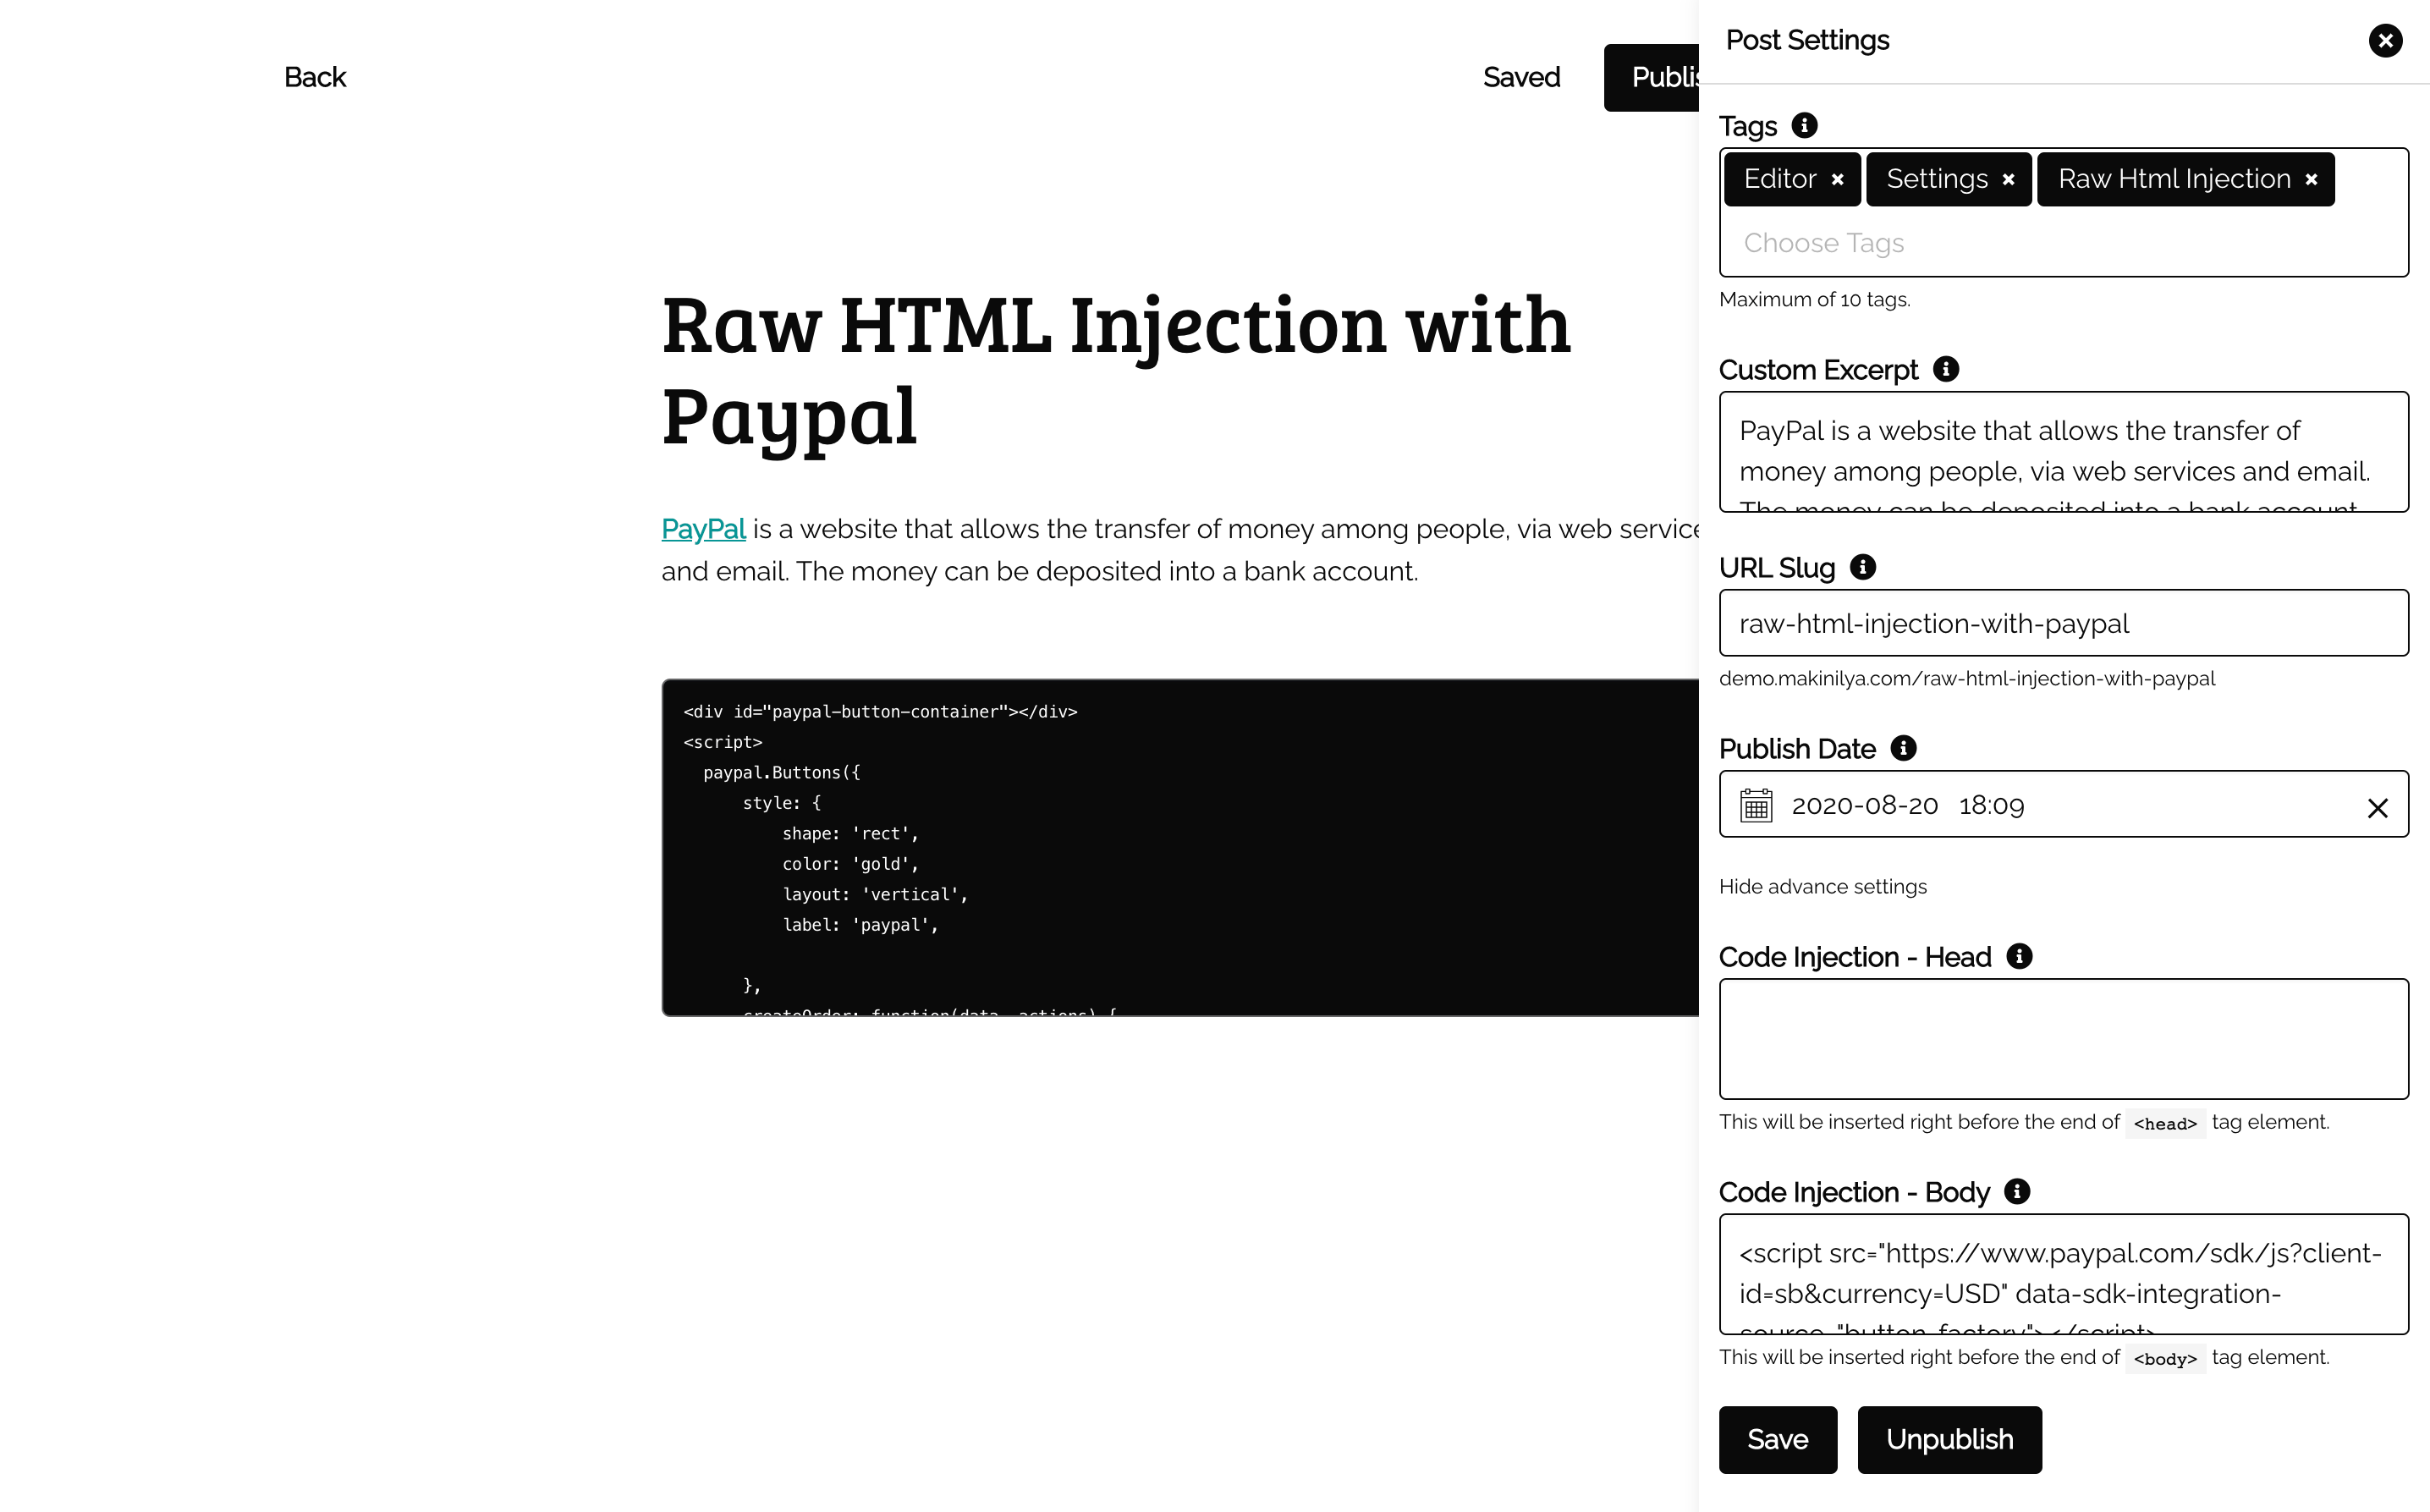 Raw HTML Injection with Paypal